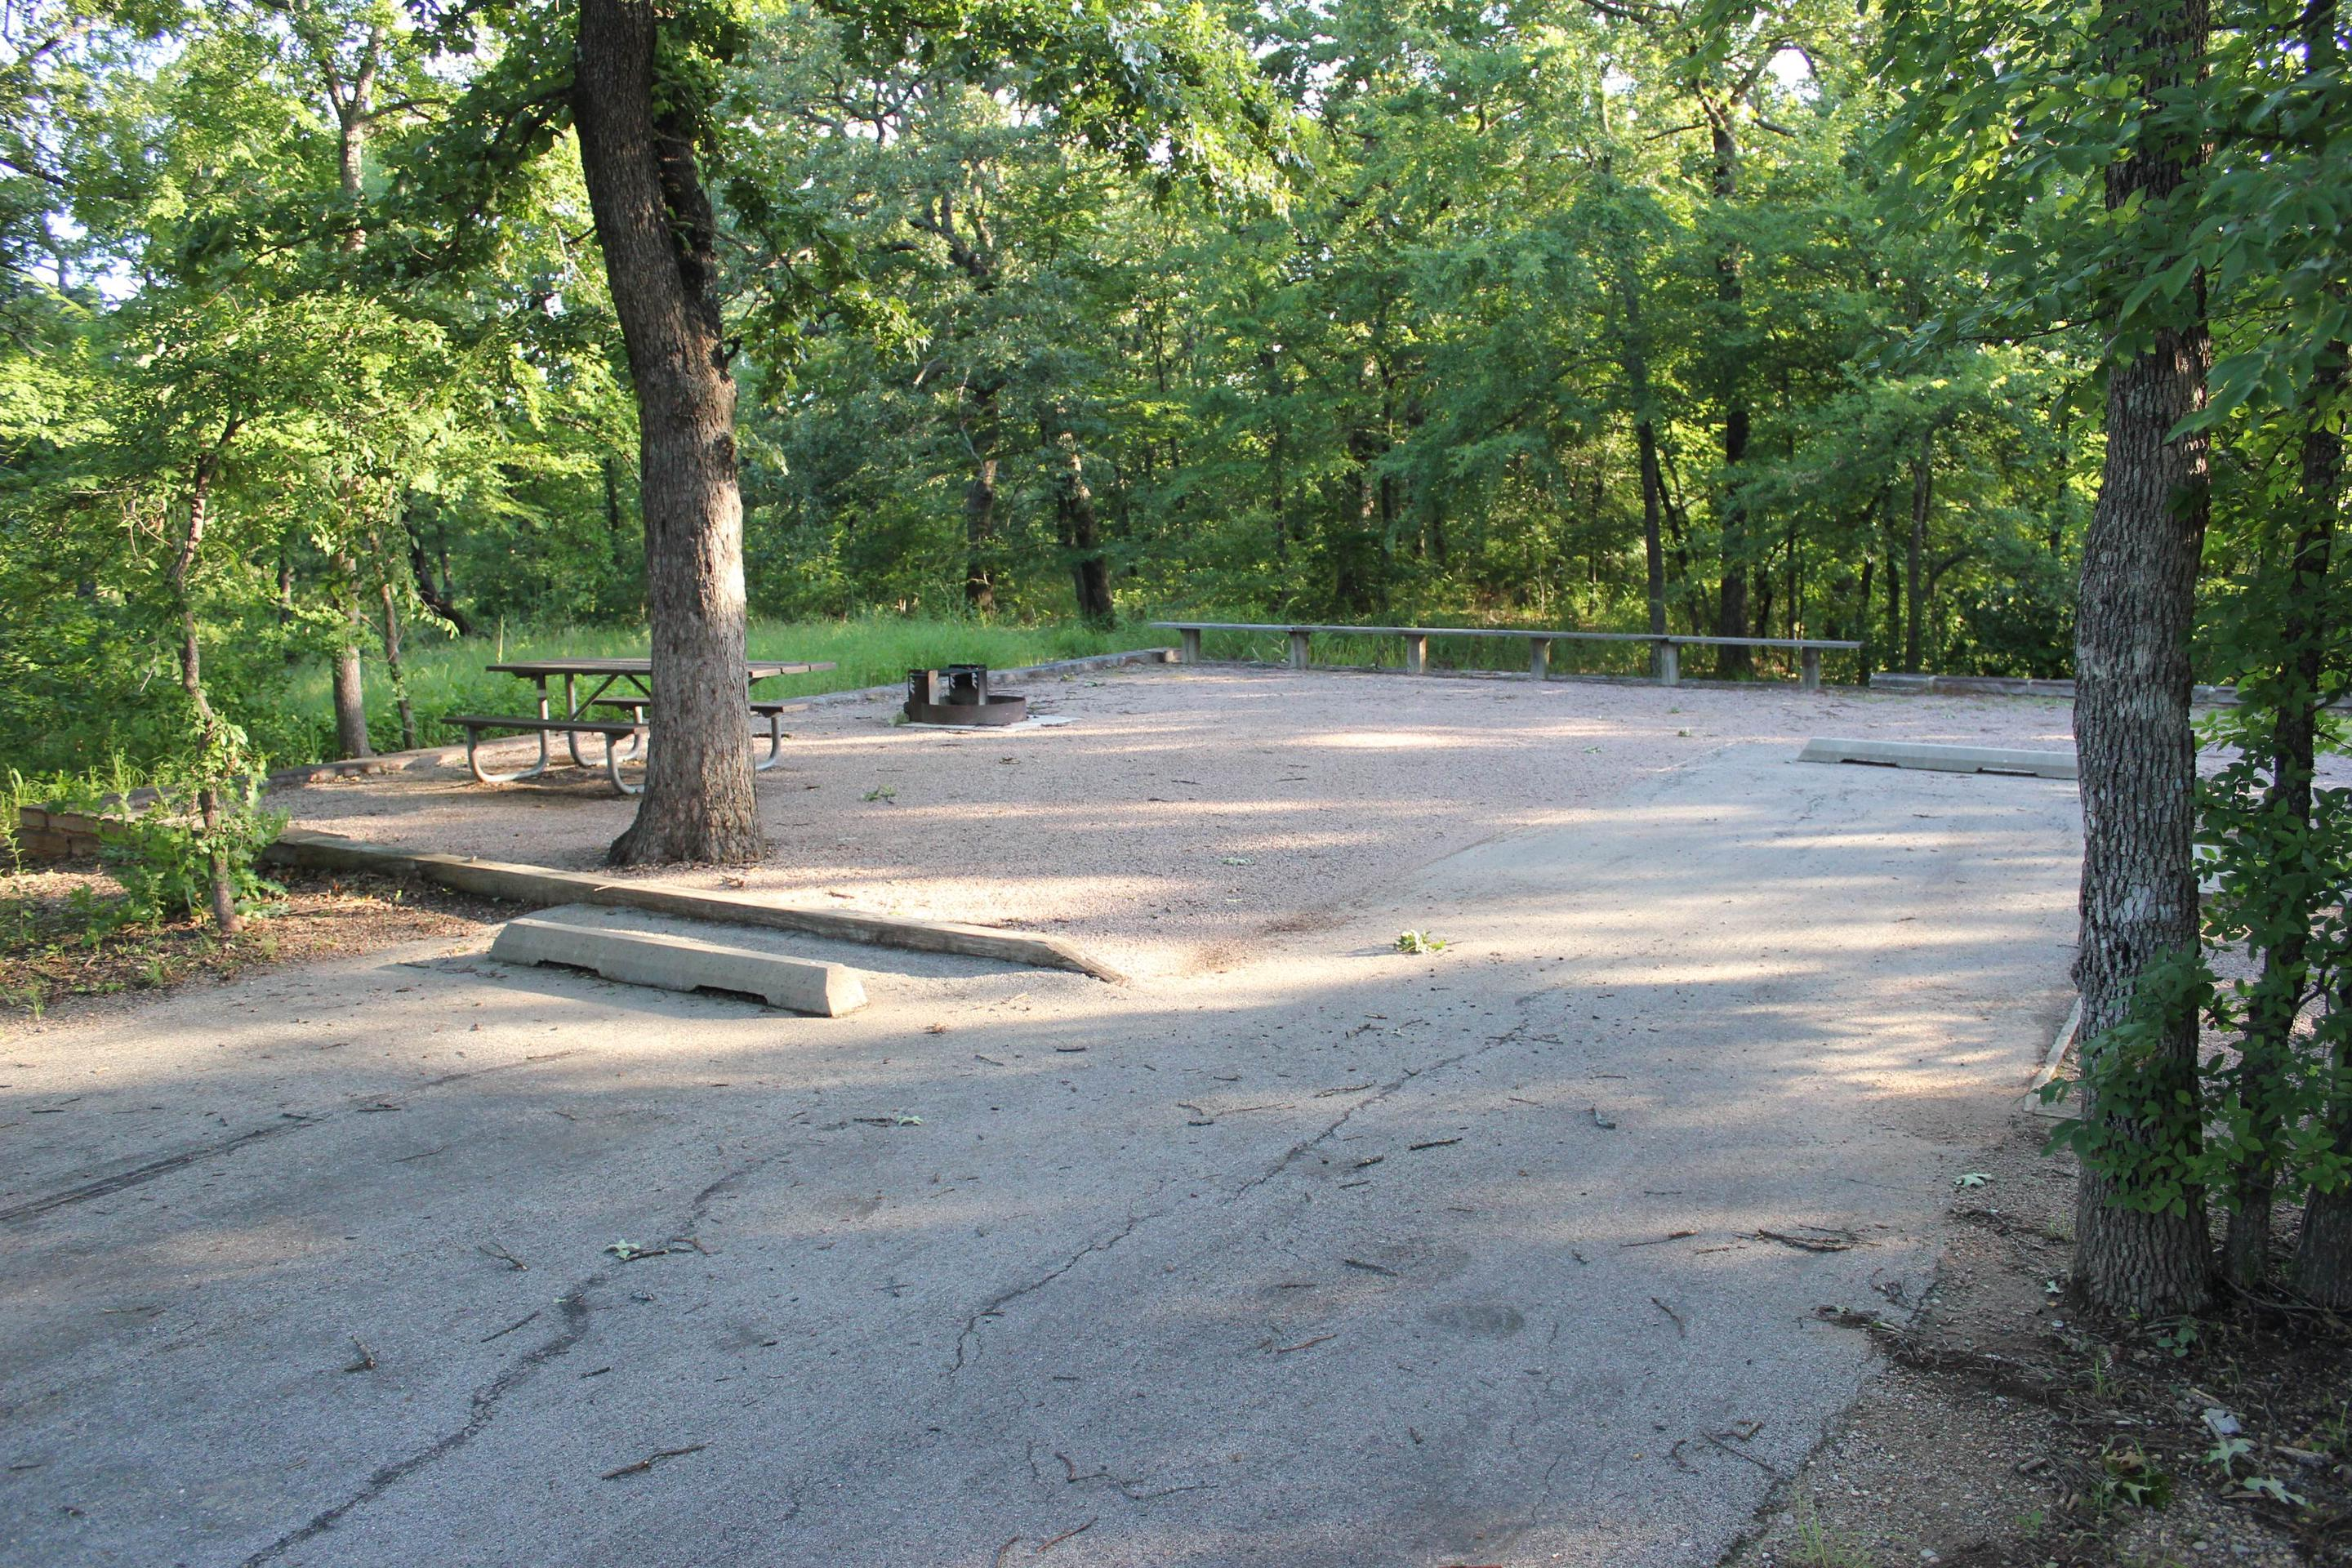 Site #49 Point Campground Image 1Site #49 Point Campground